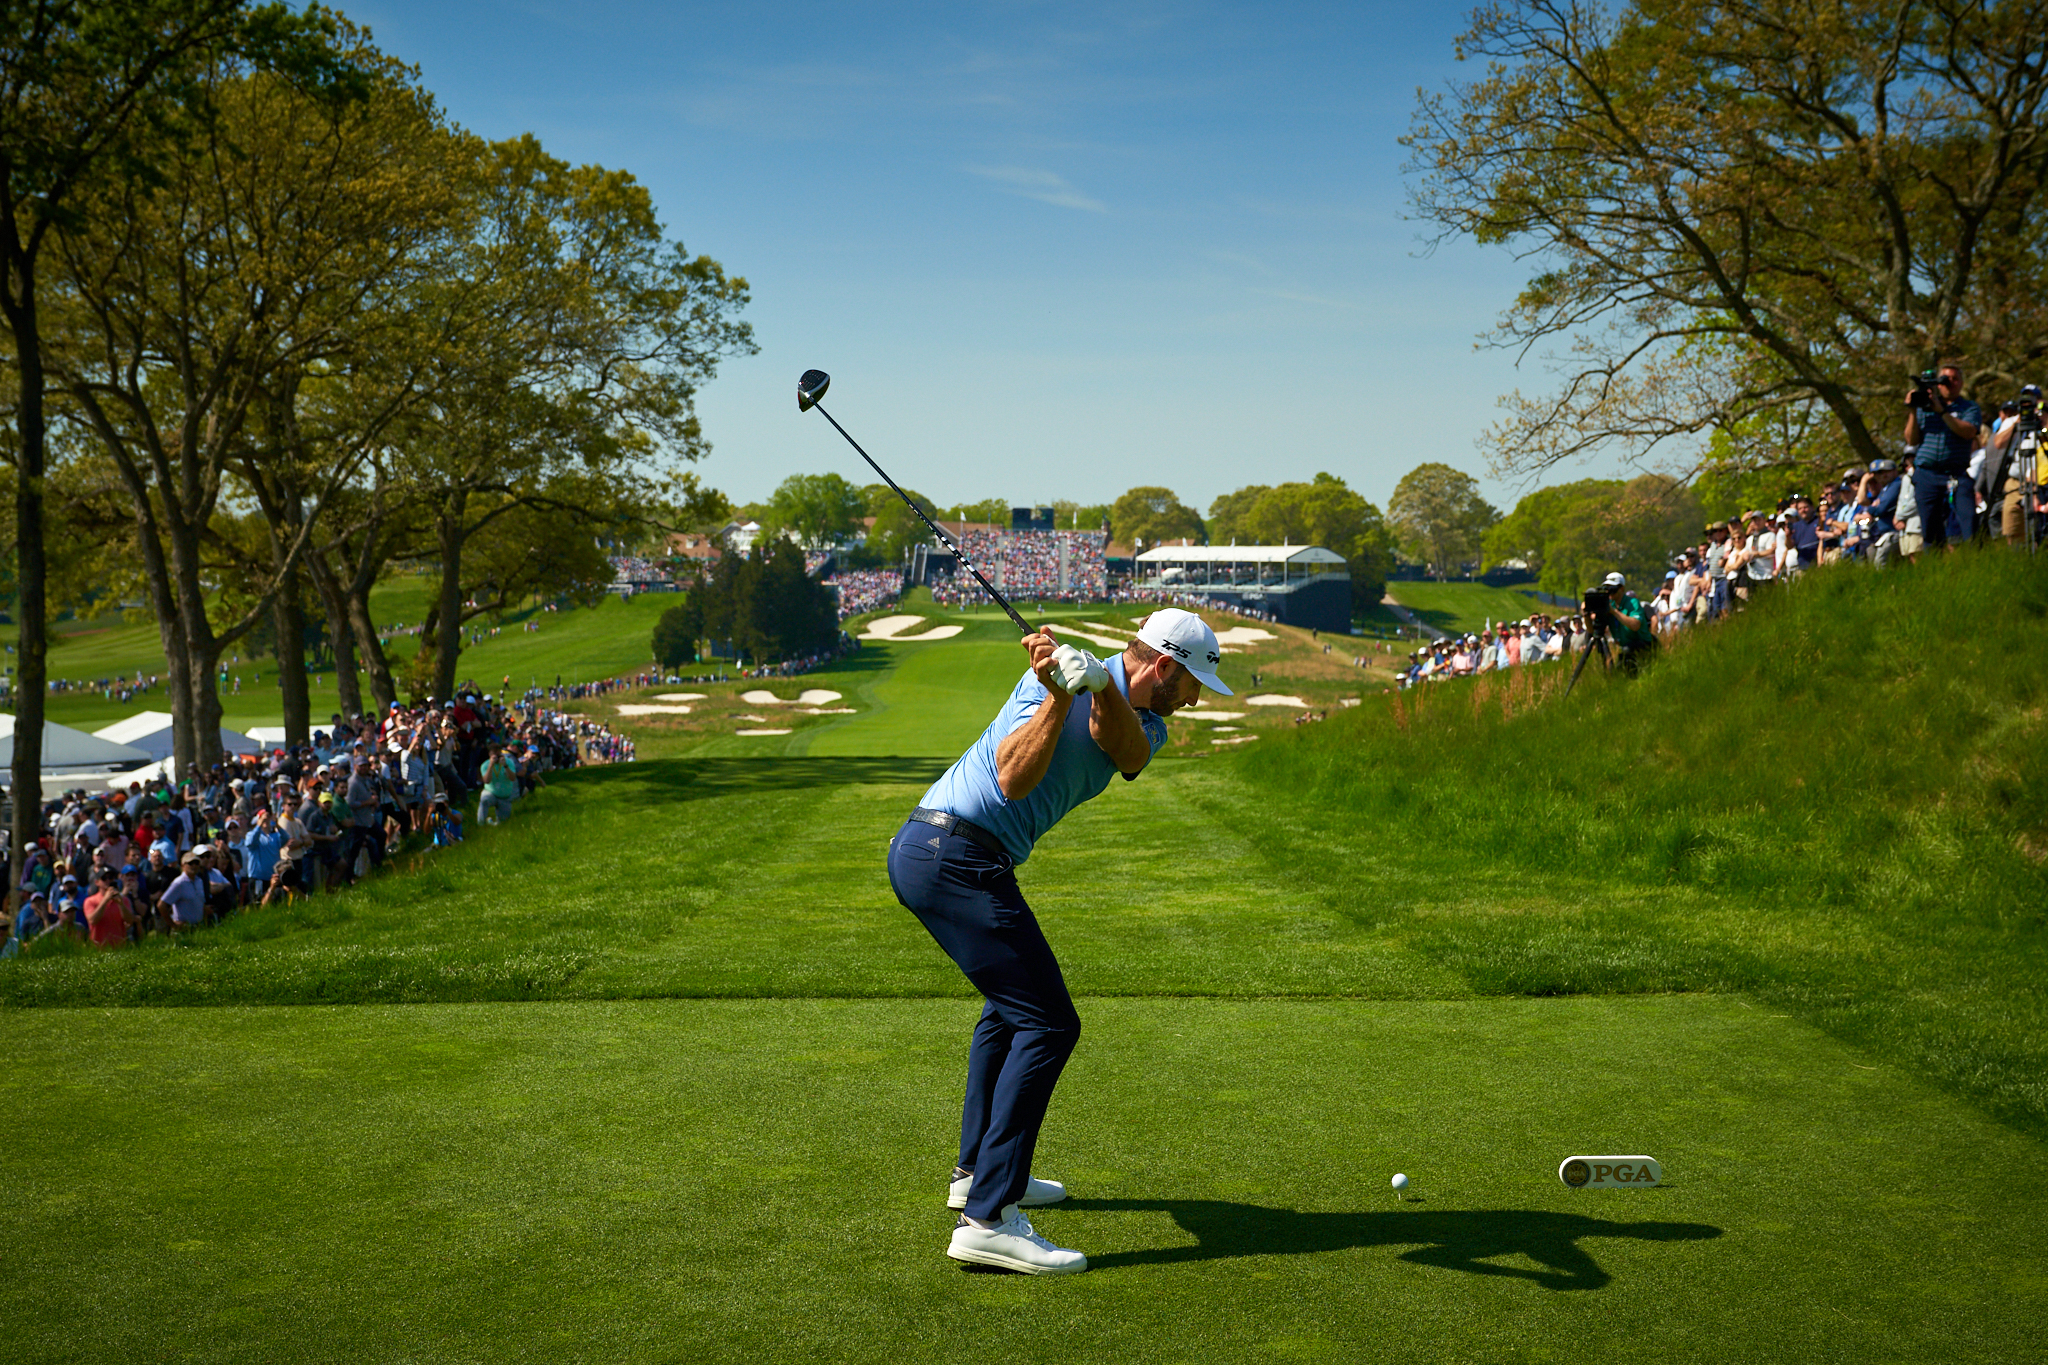 Dustin Johnson tees off at the 18th in the second round.   Sony A7rIII, Sony FE 24-70mm f2.8 GM